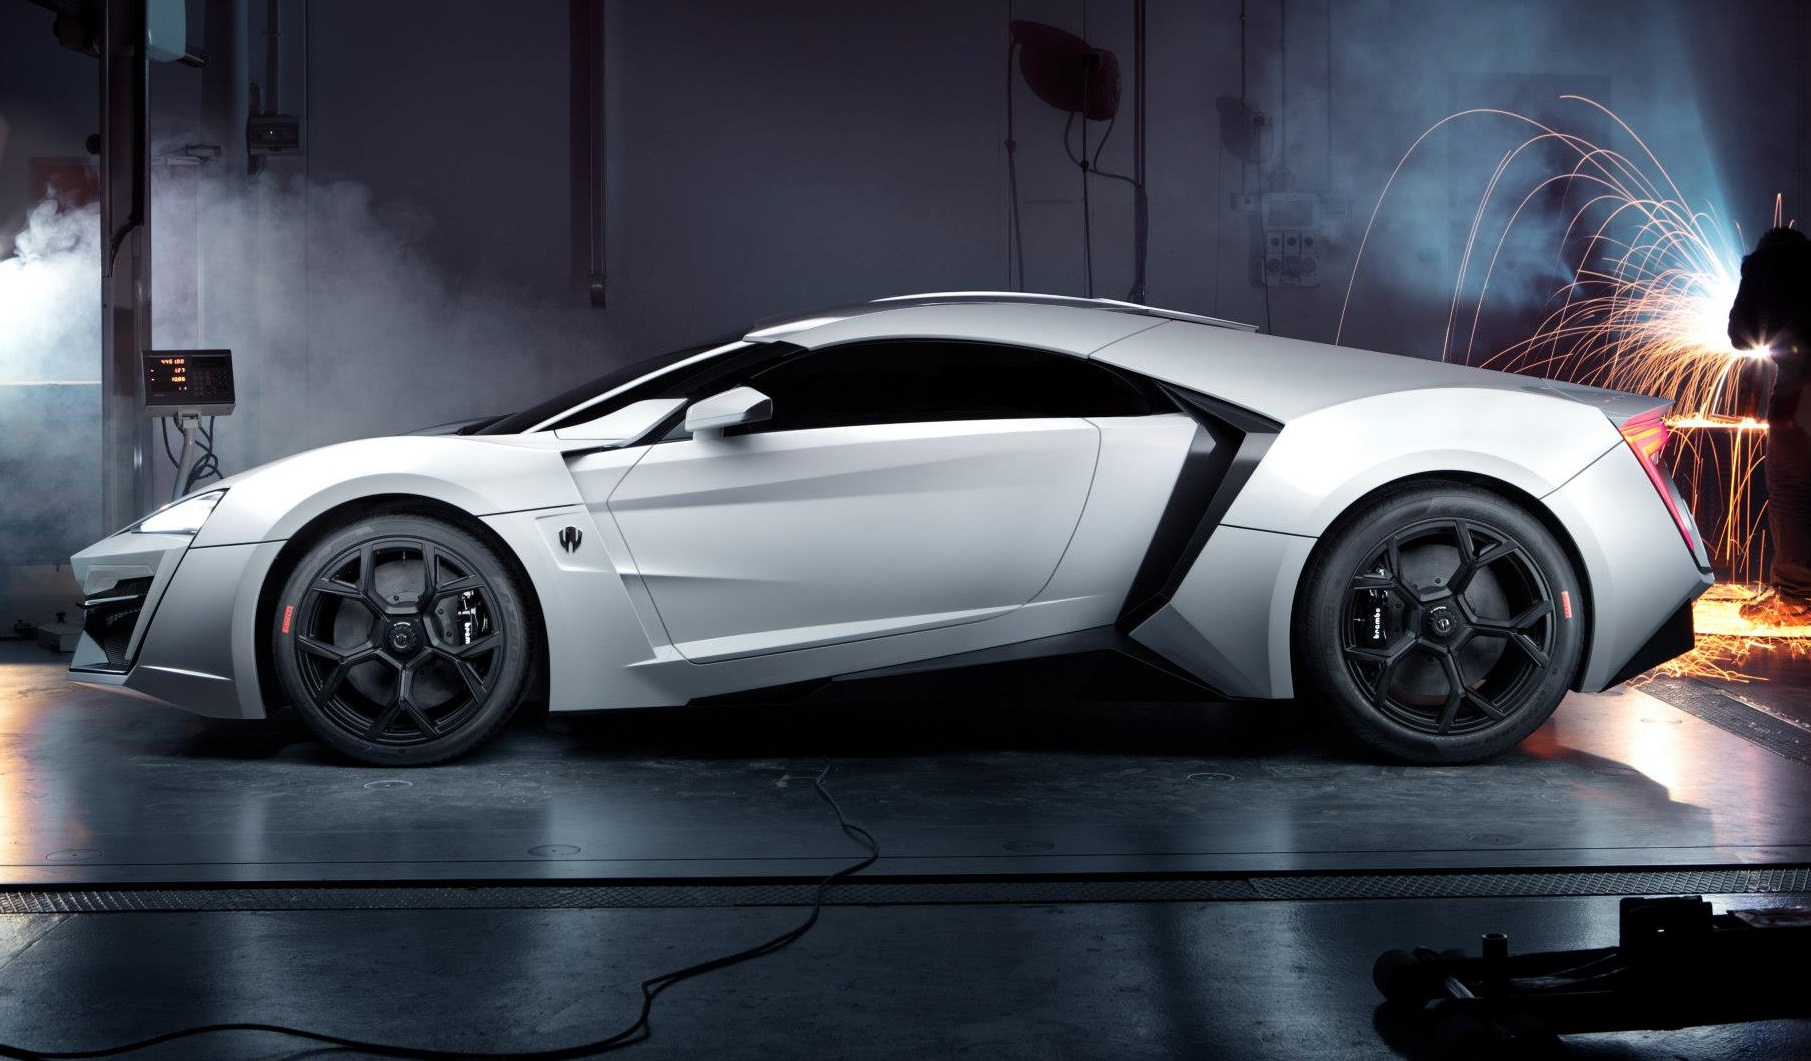 2015 W Motors Lykan Hypersport Photos Drive Away 2day